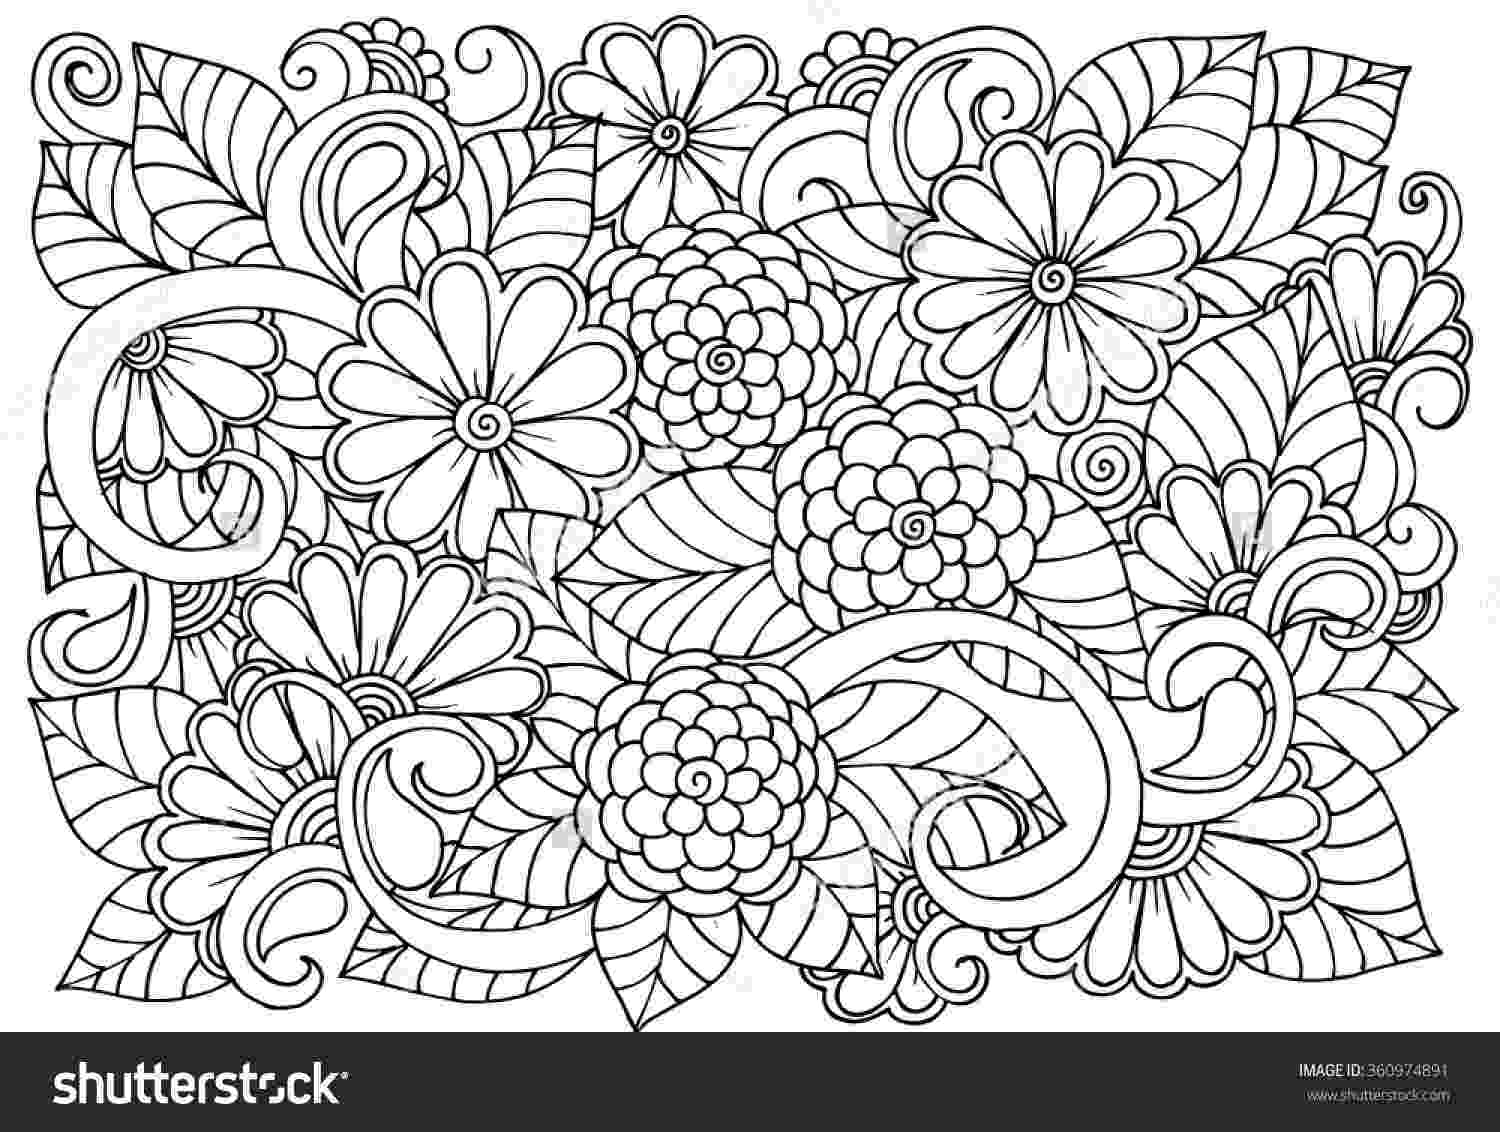 flower coloring patterns adult coloring pages patterns flowers at getdrawings flower coloring patterns